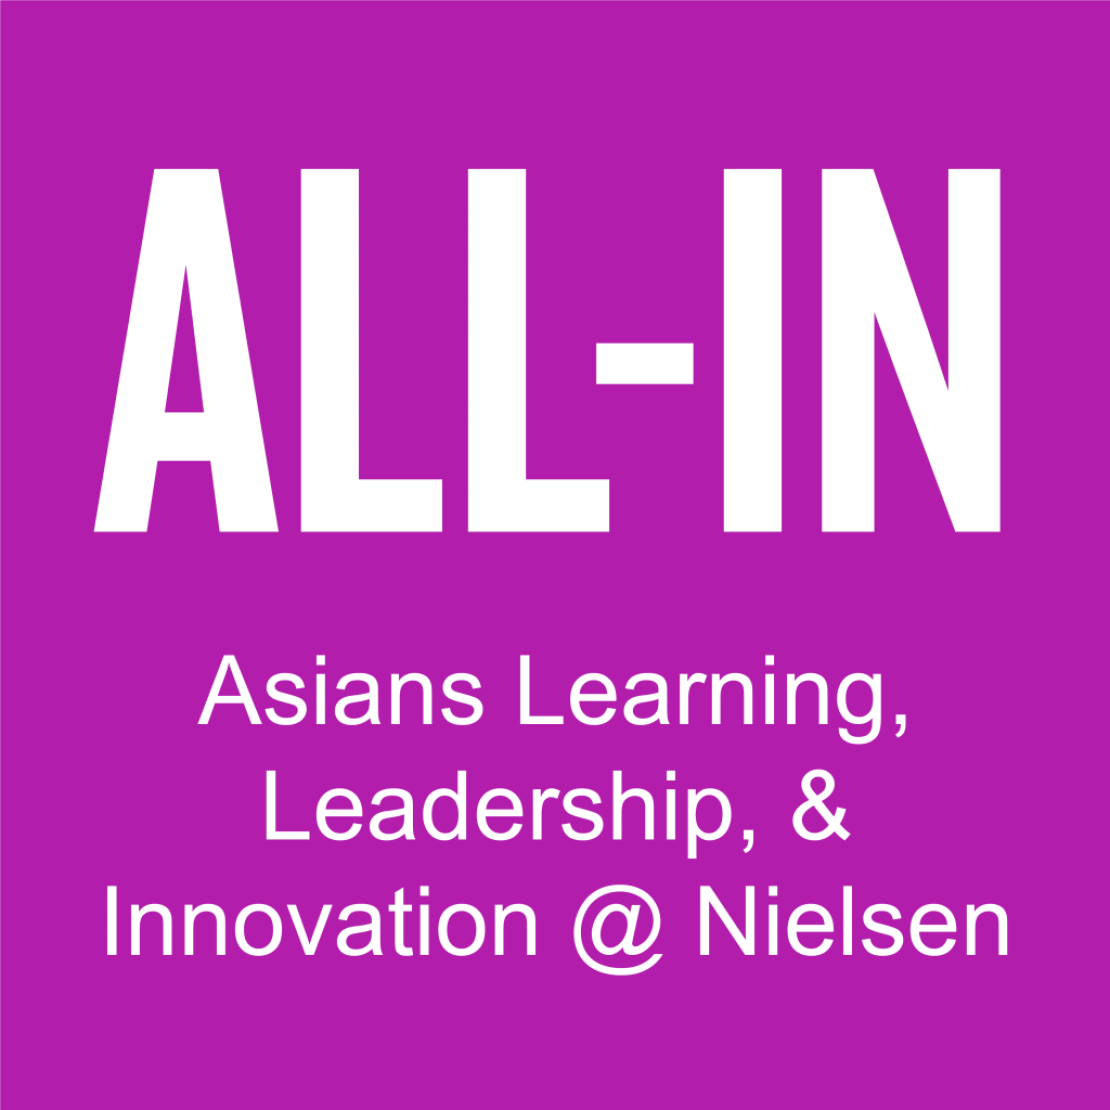 Asians Learning Leadership and Innovation at Nielsen